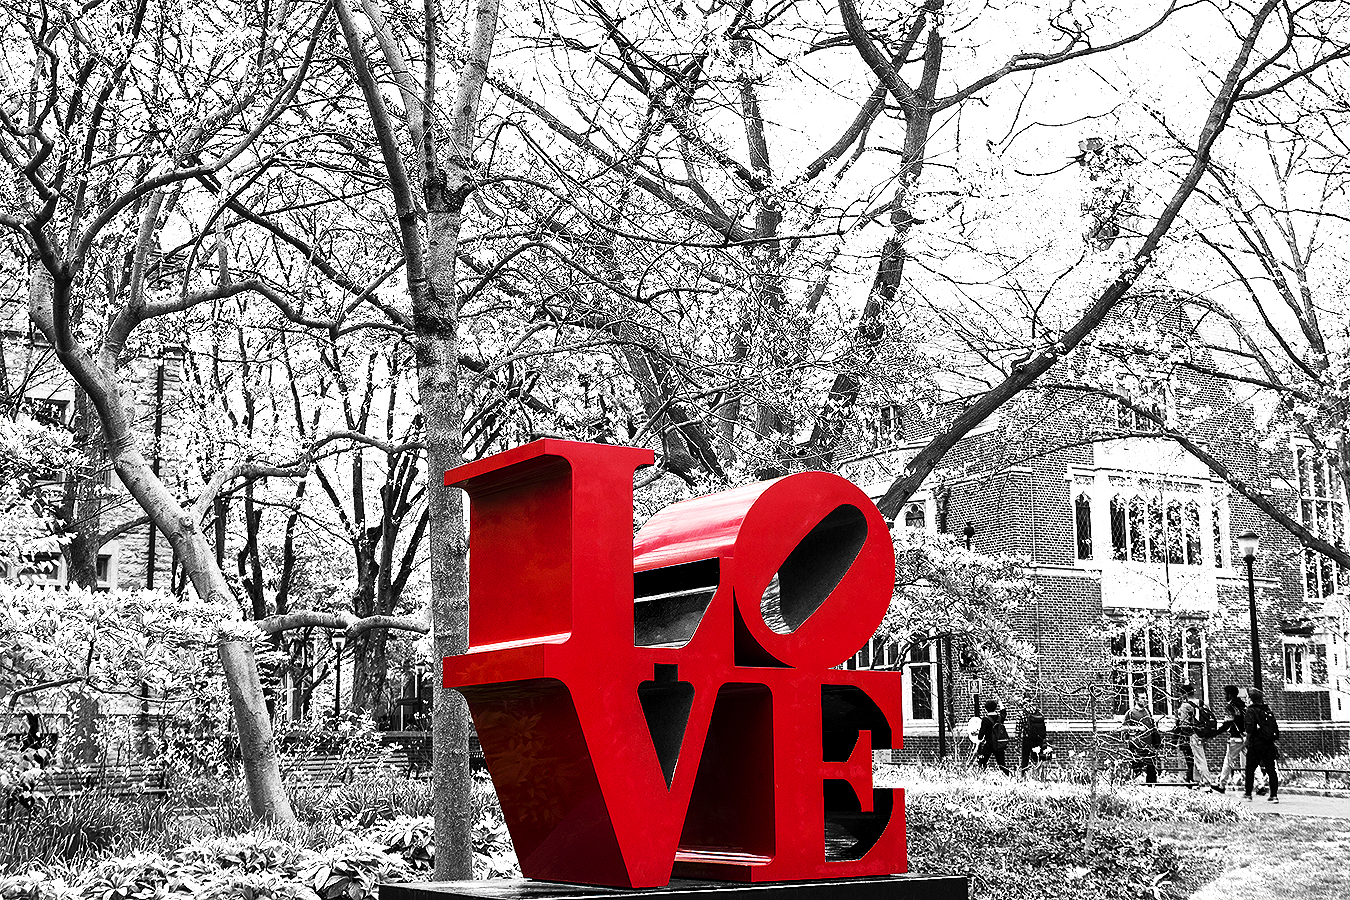 Janelle_Tong_Photography_Tony_Ward_Studio_Political_Project_UPenn_1_Fight_Hate_with_Love_Statue_College_Green_Black_and_White_Red